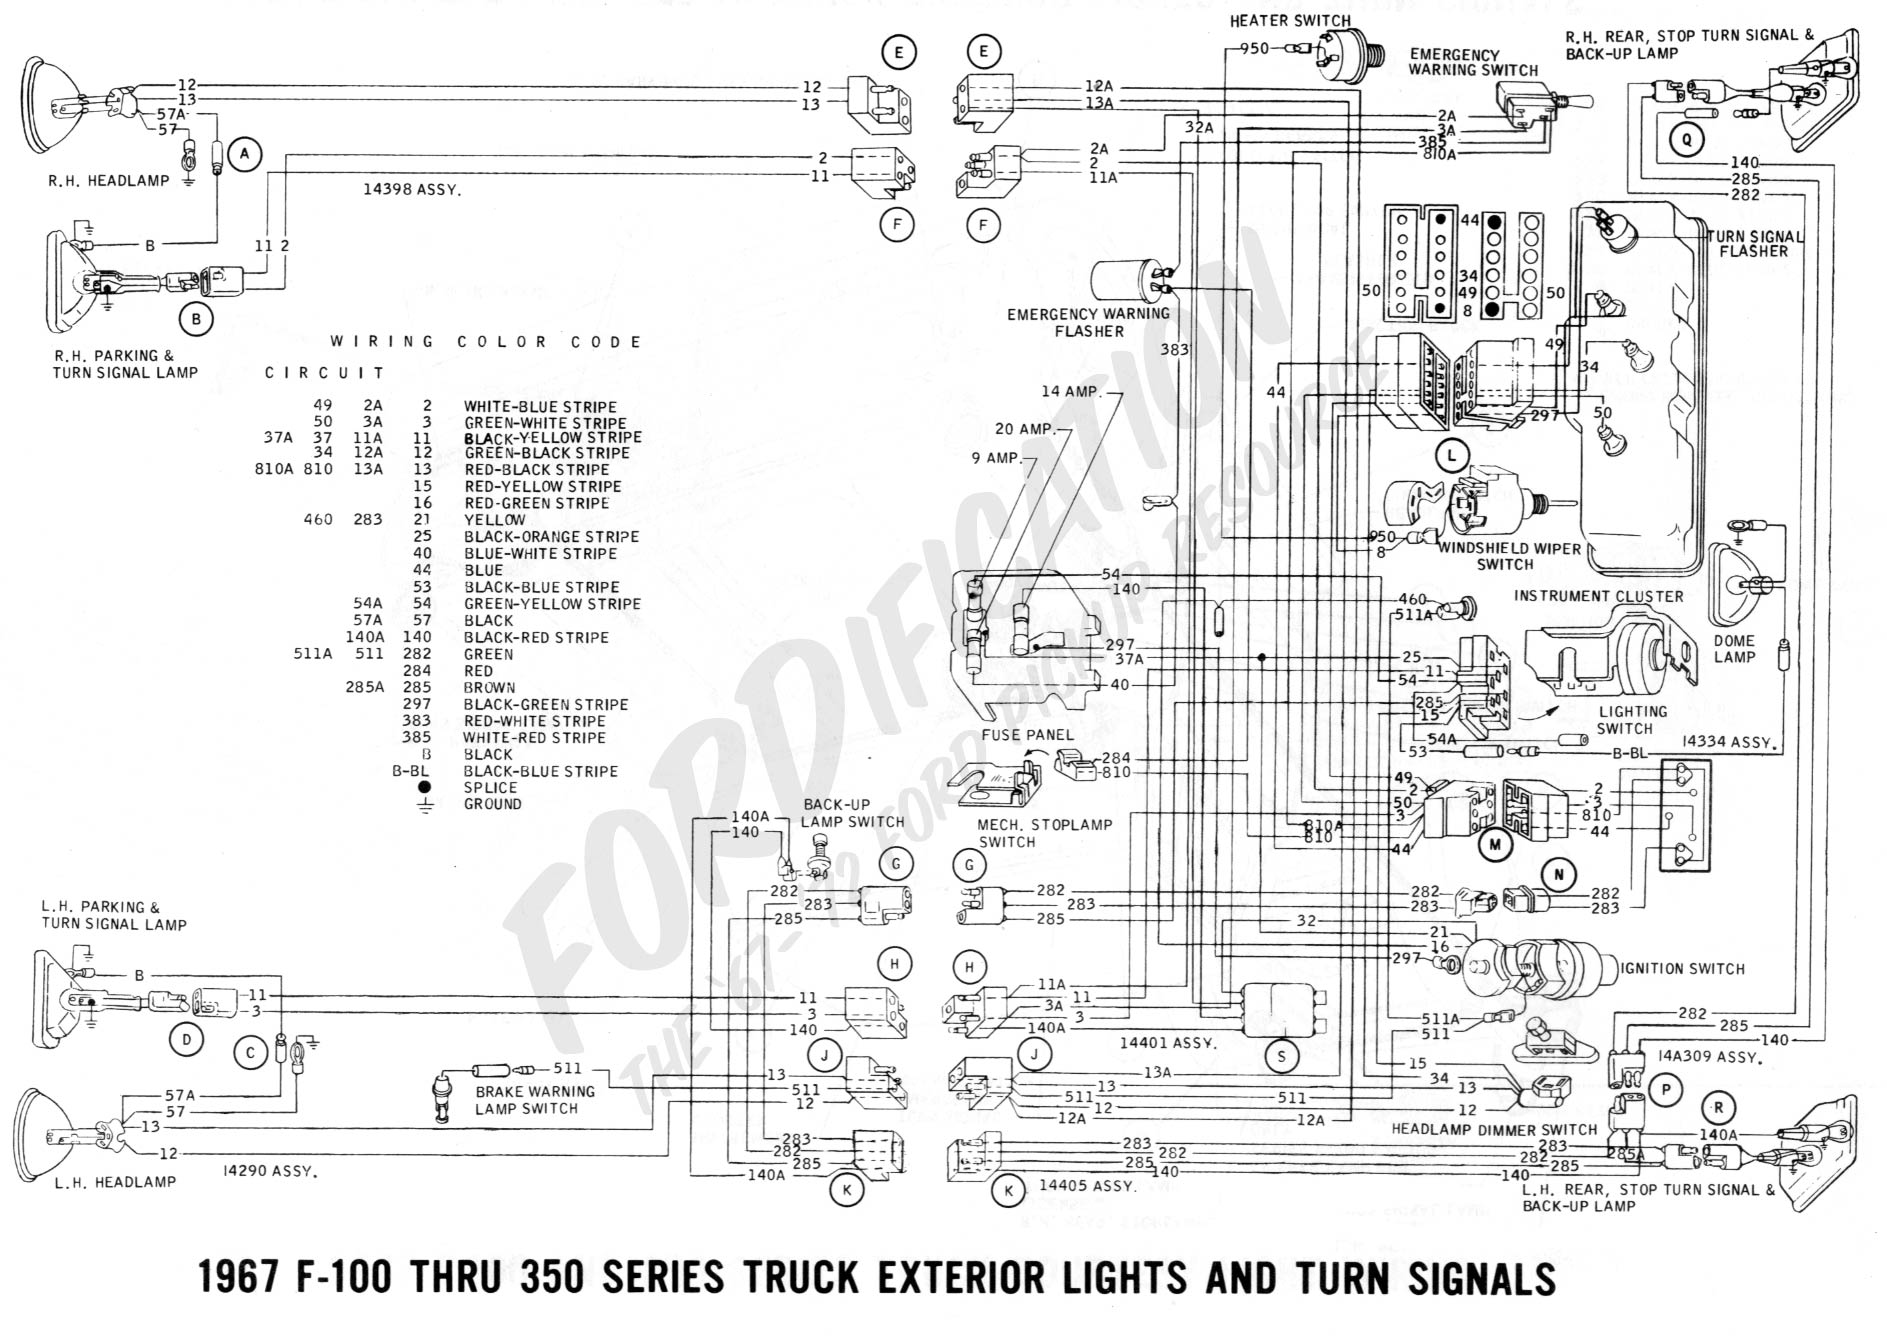 2000 Mustang Column Wiring Diagram Car Diagrams Explained 1969 Pdf 1968 Ford Steering U2022 Rh Msblog Co Fuse Box 2001